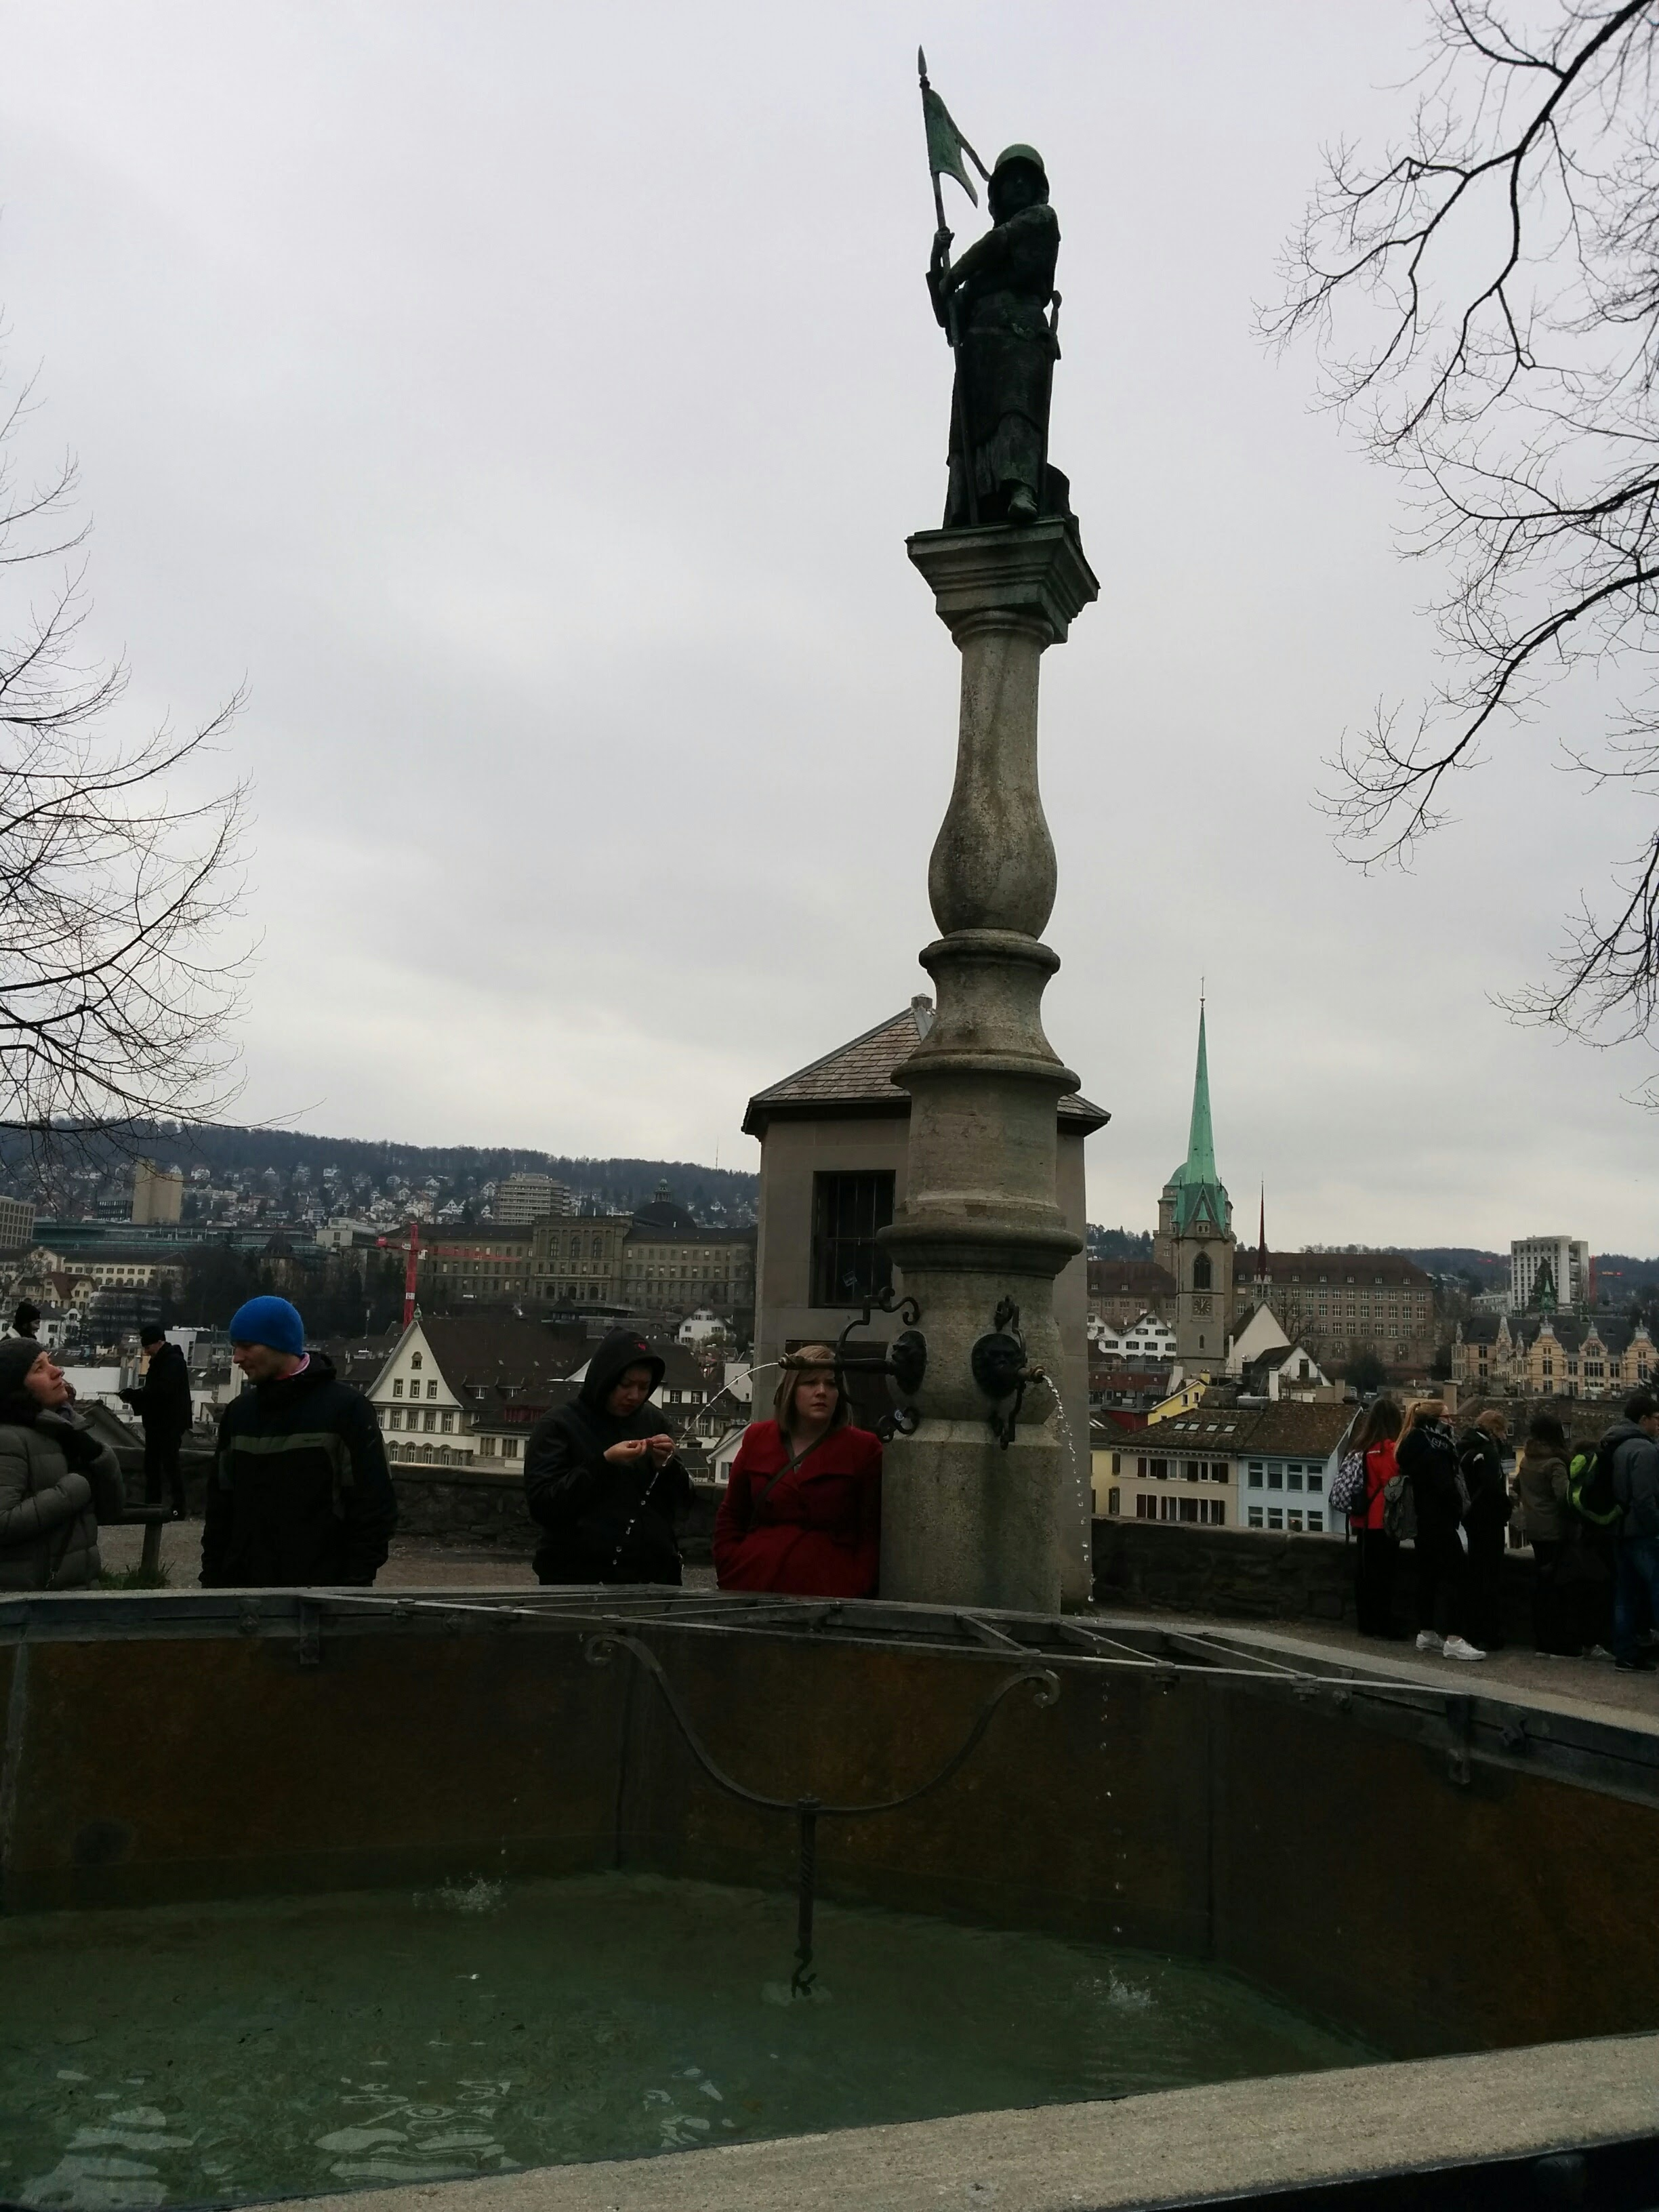 Fountain atop Lindenhof